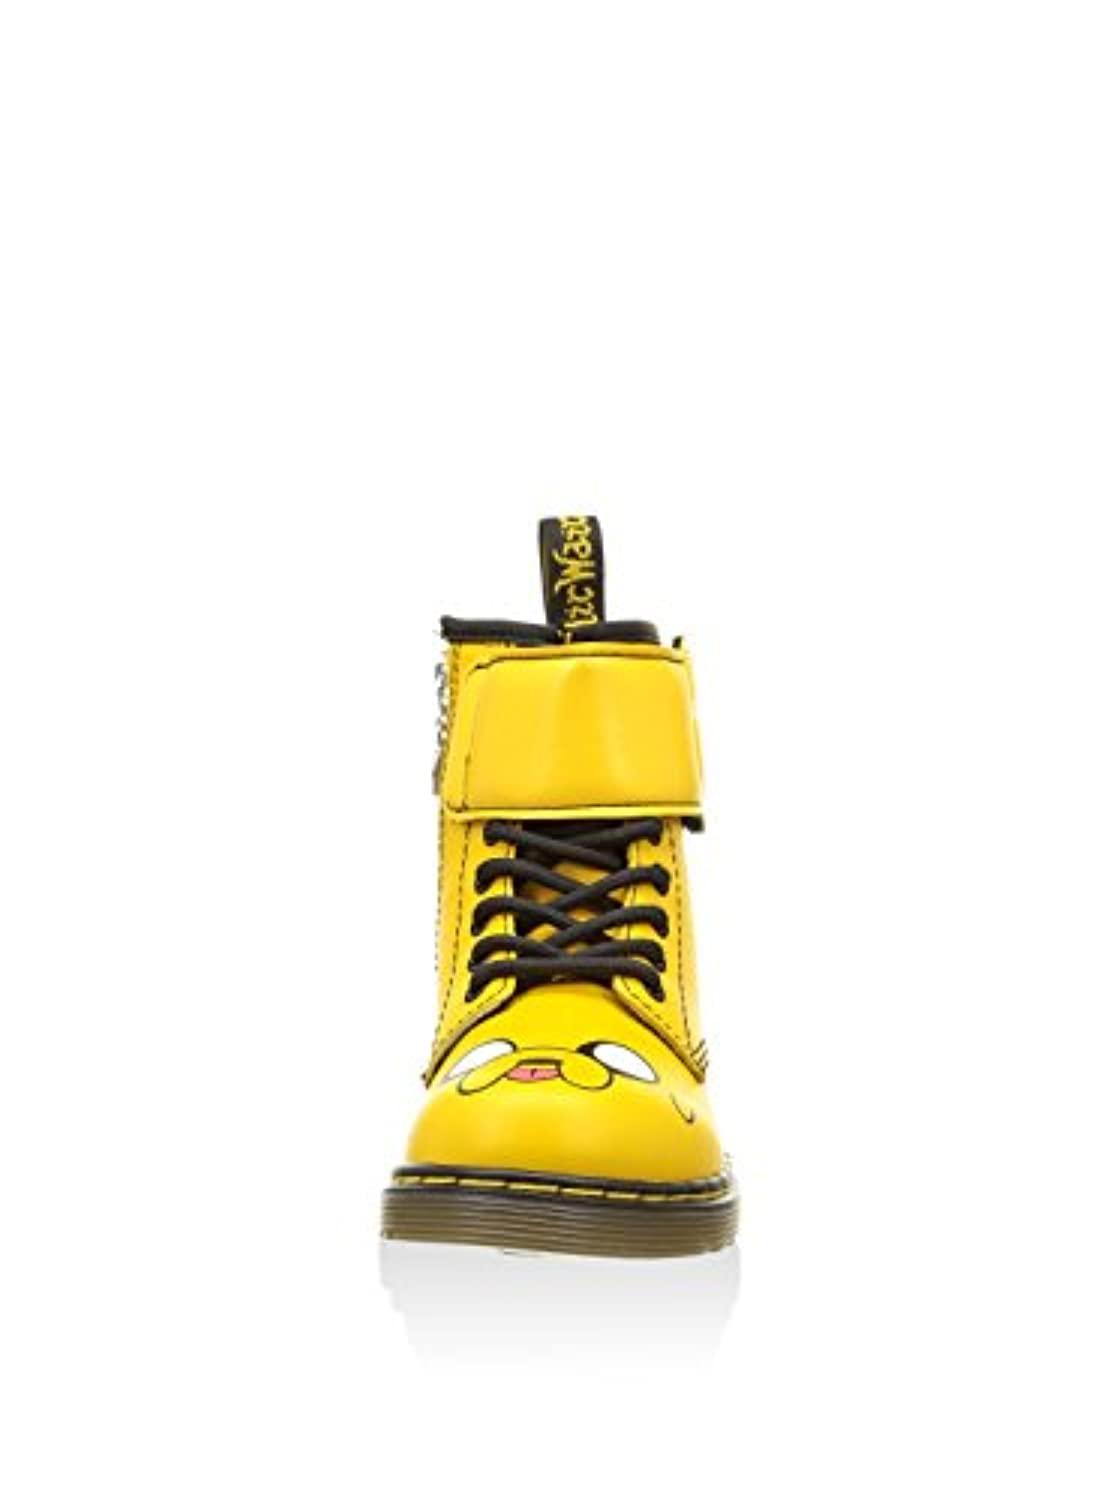 MARTENS Kids Yellow Leather Jake The Dog Boots (Junior 1 UK / 33 EU)